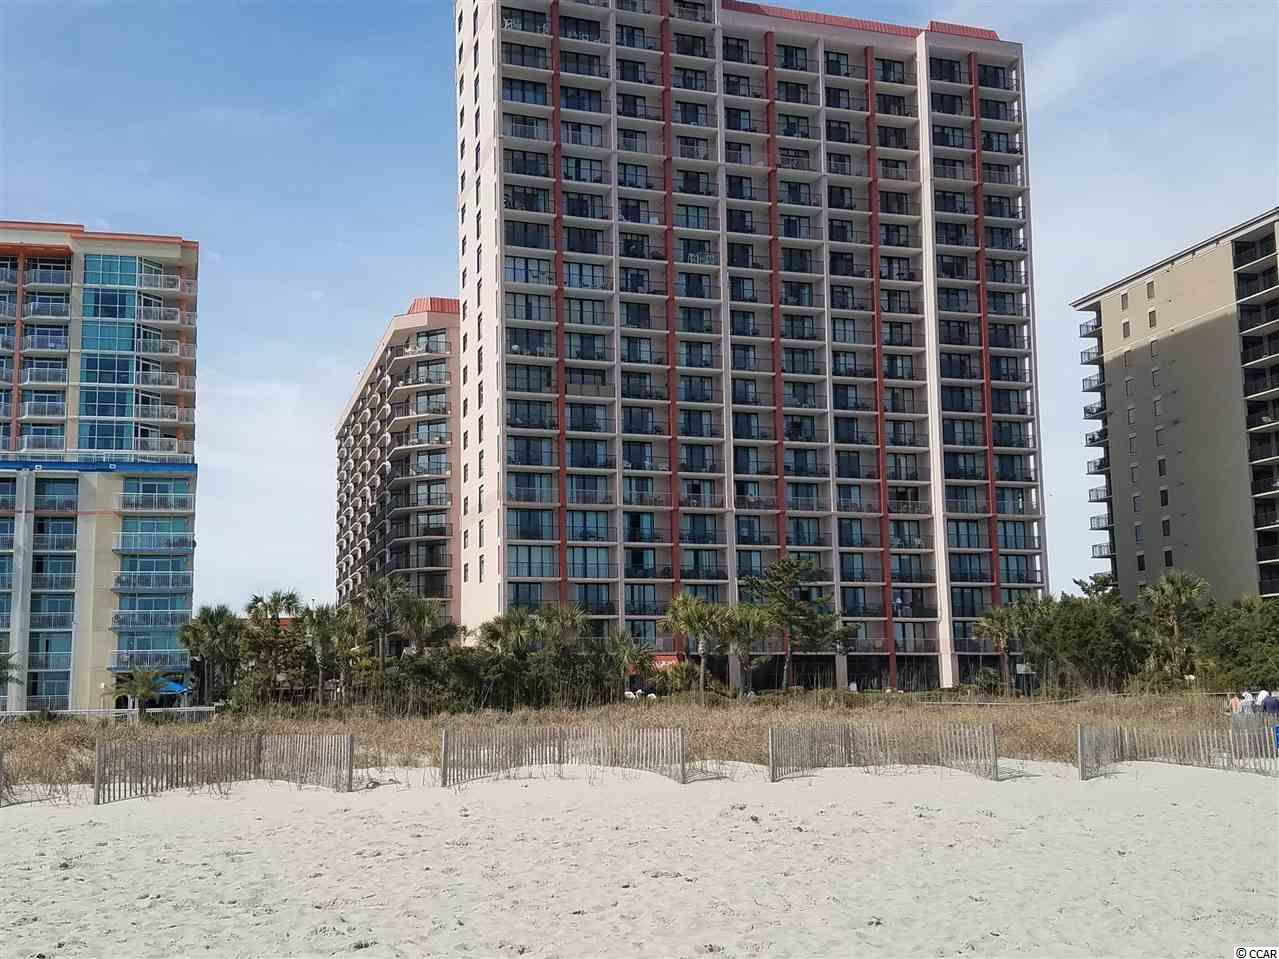 NO HOA FEES UNTIL 2021. SPACIOUS ANGLE OCEANFRONT 2 BR CONDO RECENTLY REMODELED WITH LVP LUXURY VINYL PLANK FLOORS with 6 INCH BASEBOARDS, NEW FURNITURE, KITCHEN APPLIANCES and HVAC. A LARGE COMFORTABLE LIVING ROOM/DINING AREA WITH A WRAP AROUND TILED BALCONY. GRANITE COUNTERTOPS THROUGHOUT THE CONDO, UPGRADED KITCHEN CABINETS. MICROWAVE, STOVE, REFRIGERATOR, DISHWASHER. FRESHLY PAINTED and REDECORATED WITH LIGHT FIXTURES, WALL DECORATIONS and DRAPES. ADJACENT PARKING GARAGE with  WALKOVERS ON LEVELS 3, 4, and 5. THIS POPULAR RESORT IS LOCATED ON THE GOLDEN MILE OF MILLION + DOLLAR HOMES AND OFFERS INDOOR & OUTDOOR POOLS, LAZY RIVER, SAUNA, EXERCISE ROOM, CAFE & BAR, CONFERENCE/ DINING ROOMS. OWNERS MAY HAVE PETS. EASY ACCESS TO  CAROLINA BAYS PARKWAY (HWY 31), MYRTLE BEACH VENUES, AIRPORT & GOLF. AN EXCEPTIONAL VALUE FOR A FAMILY RETREAT. THE CONDO'S ELECTRIC POWER BILL IS INCLUDED IN THE HOA FEE. PRICED BELOW THE COMPETITION AND READY TO GO.